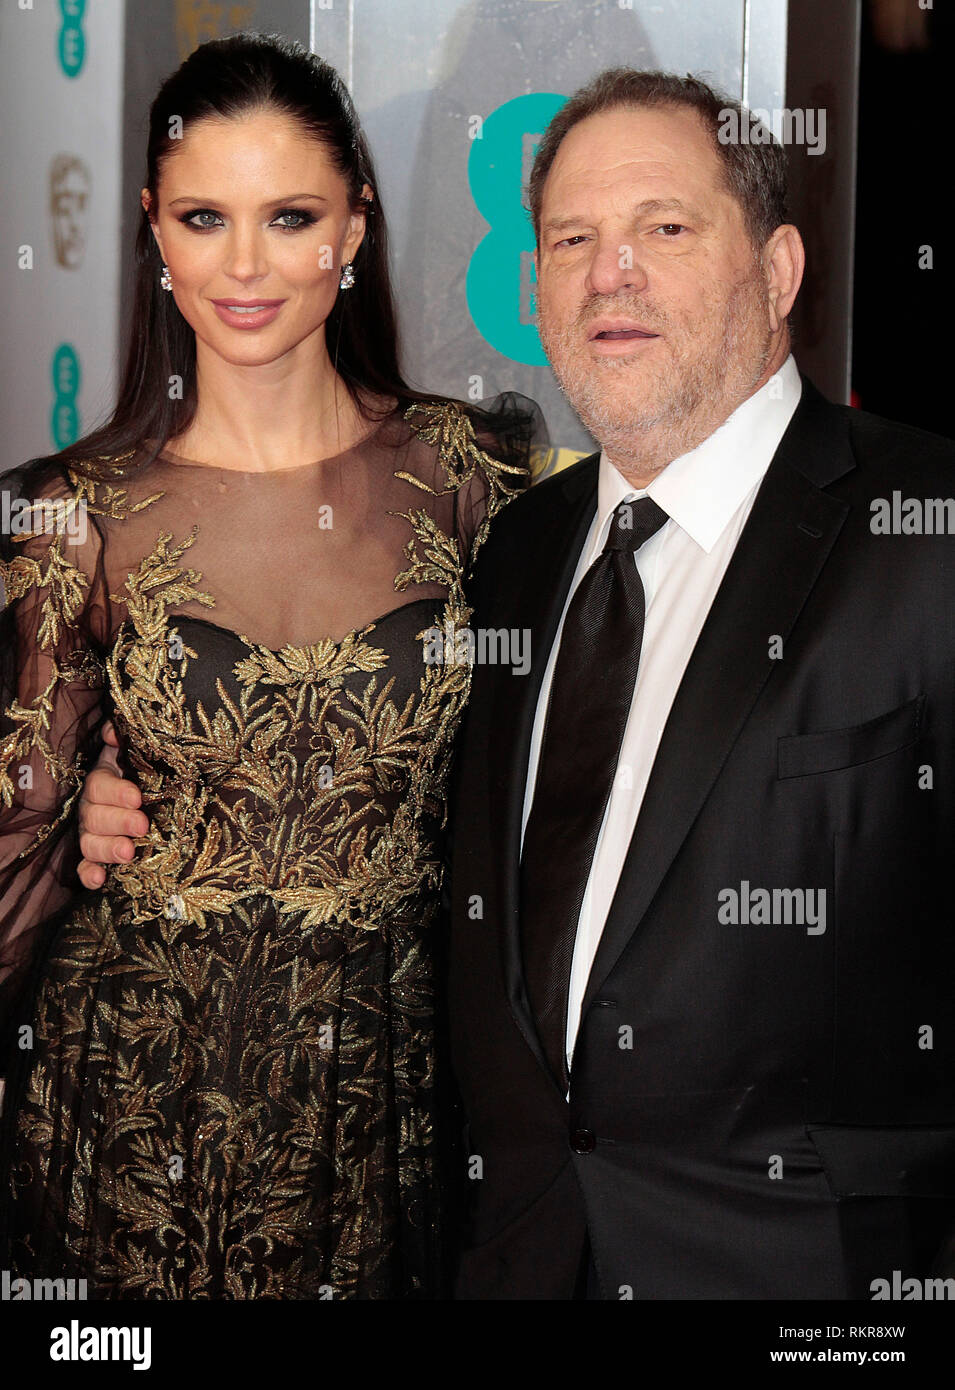 Harvey Weinstein Arrives At The 2014 British Academy Film Awards Bafta At The Royal Opera House Coven Garden Stock Photo Alamy